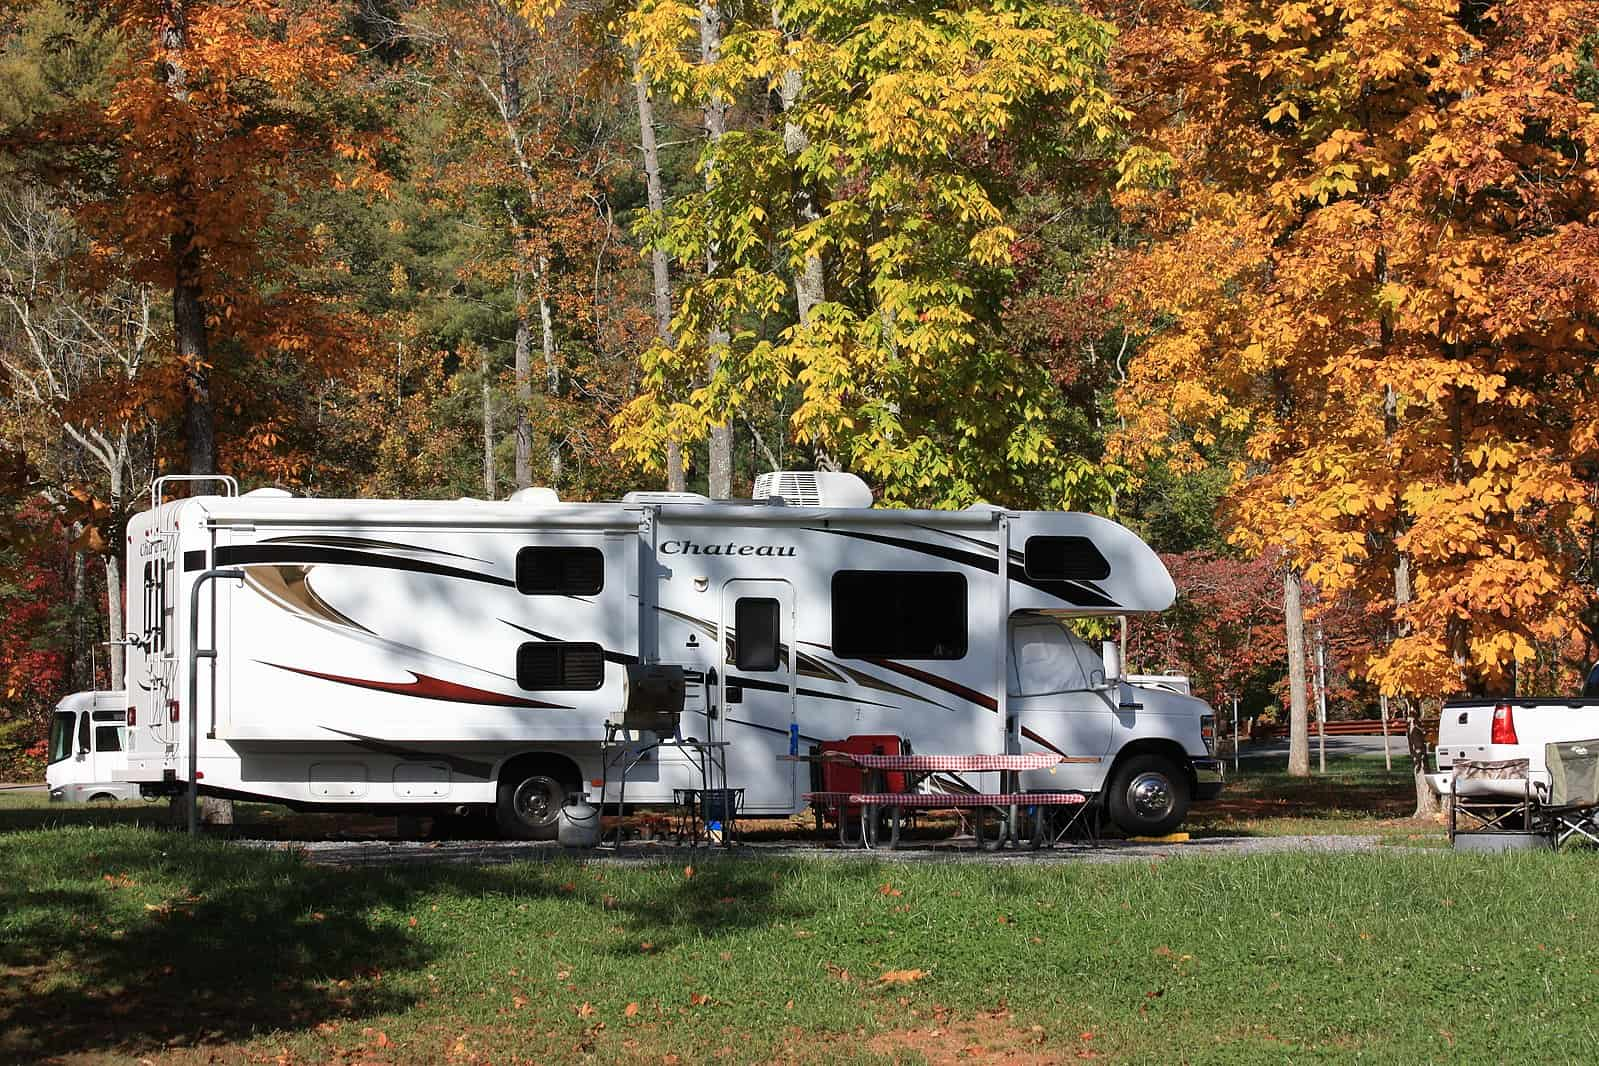 RV in fall foliage